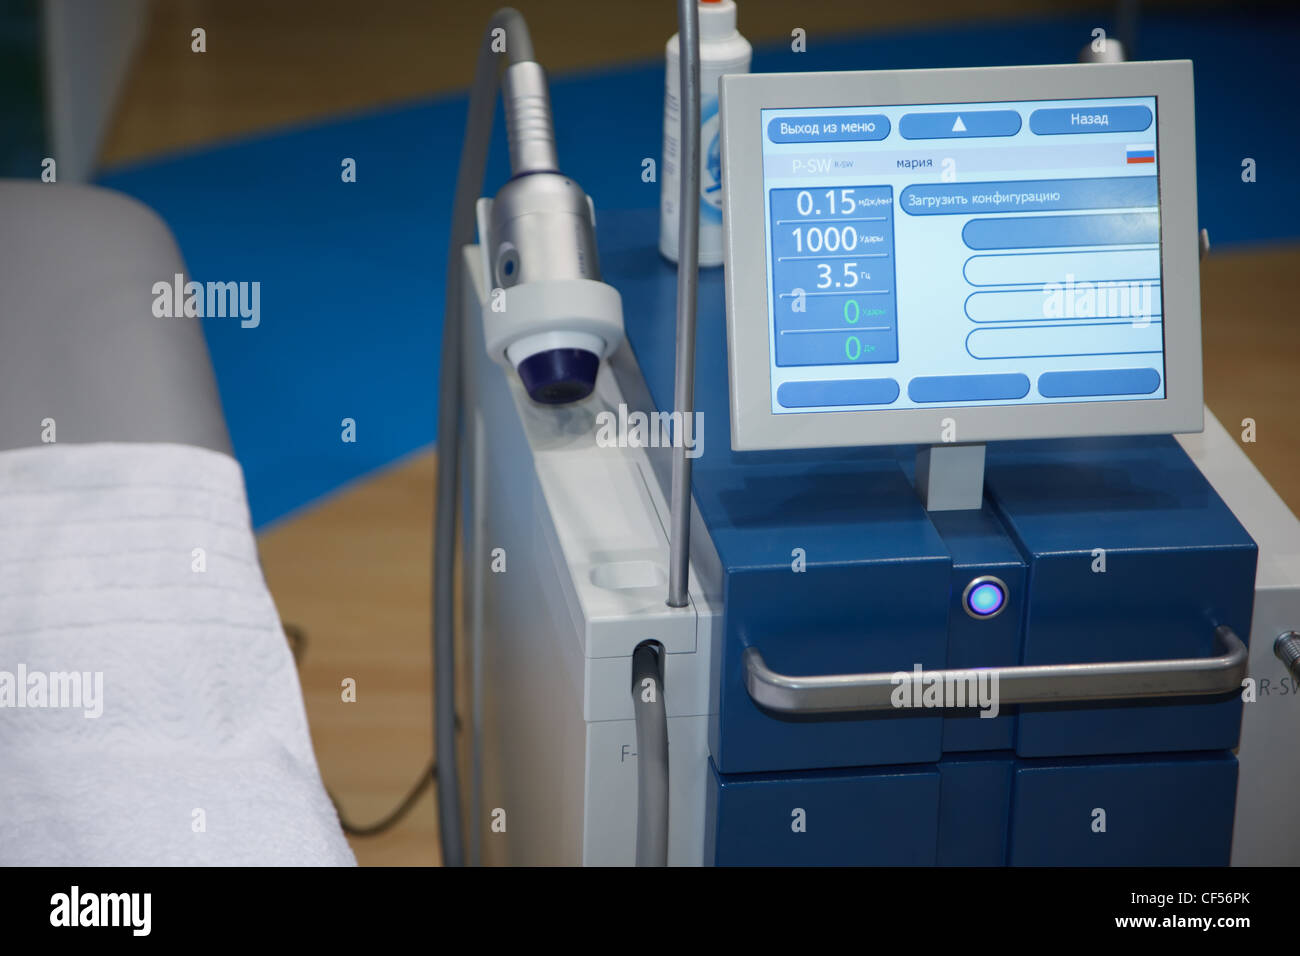 Medical Equipment ultrasound scanning. Diagnosis of pregnancy. - Stock Image